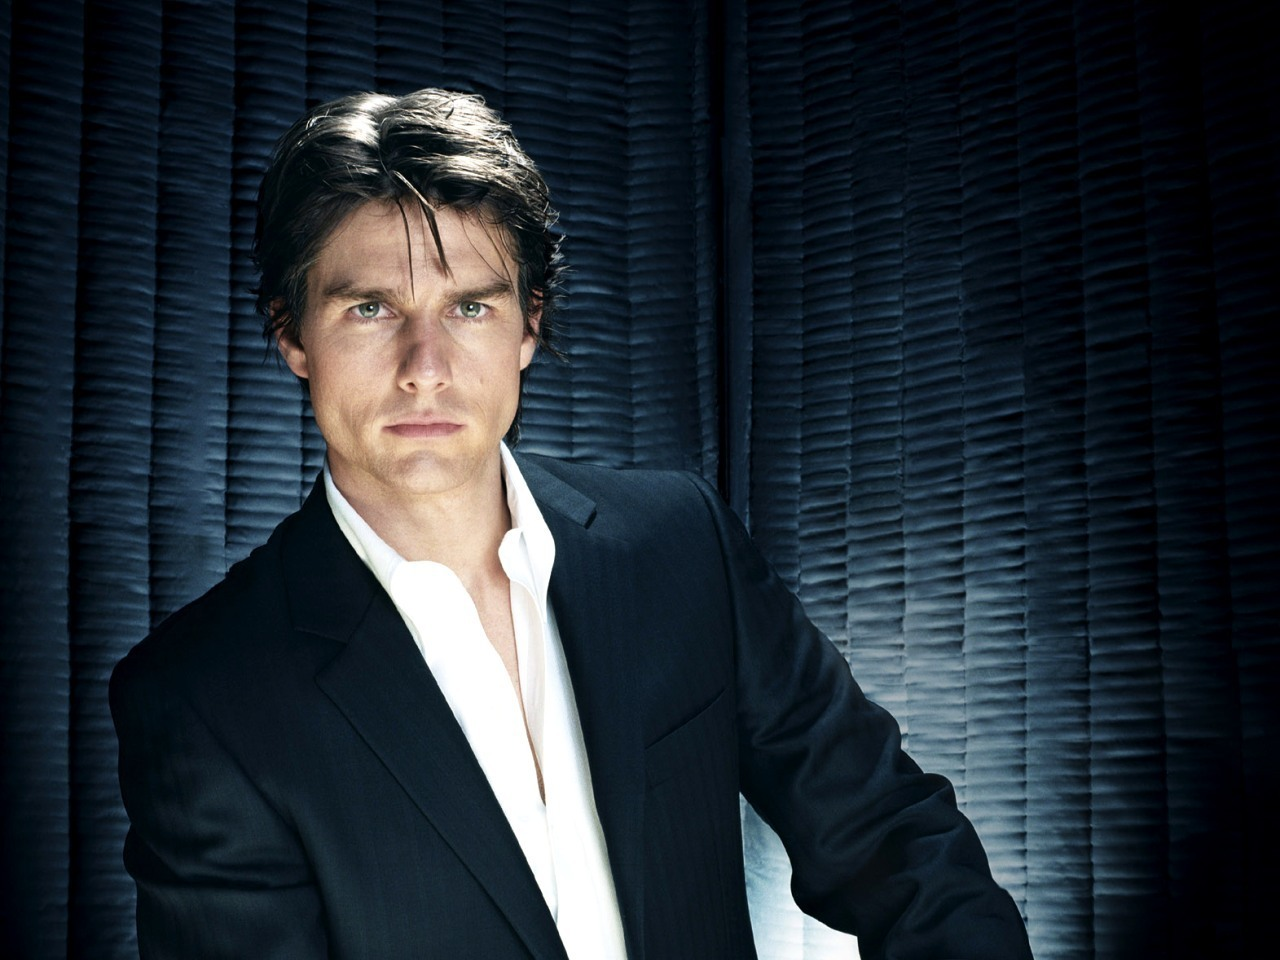 WALLPAPERS WORLD Tom cruise 1280x960